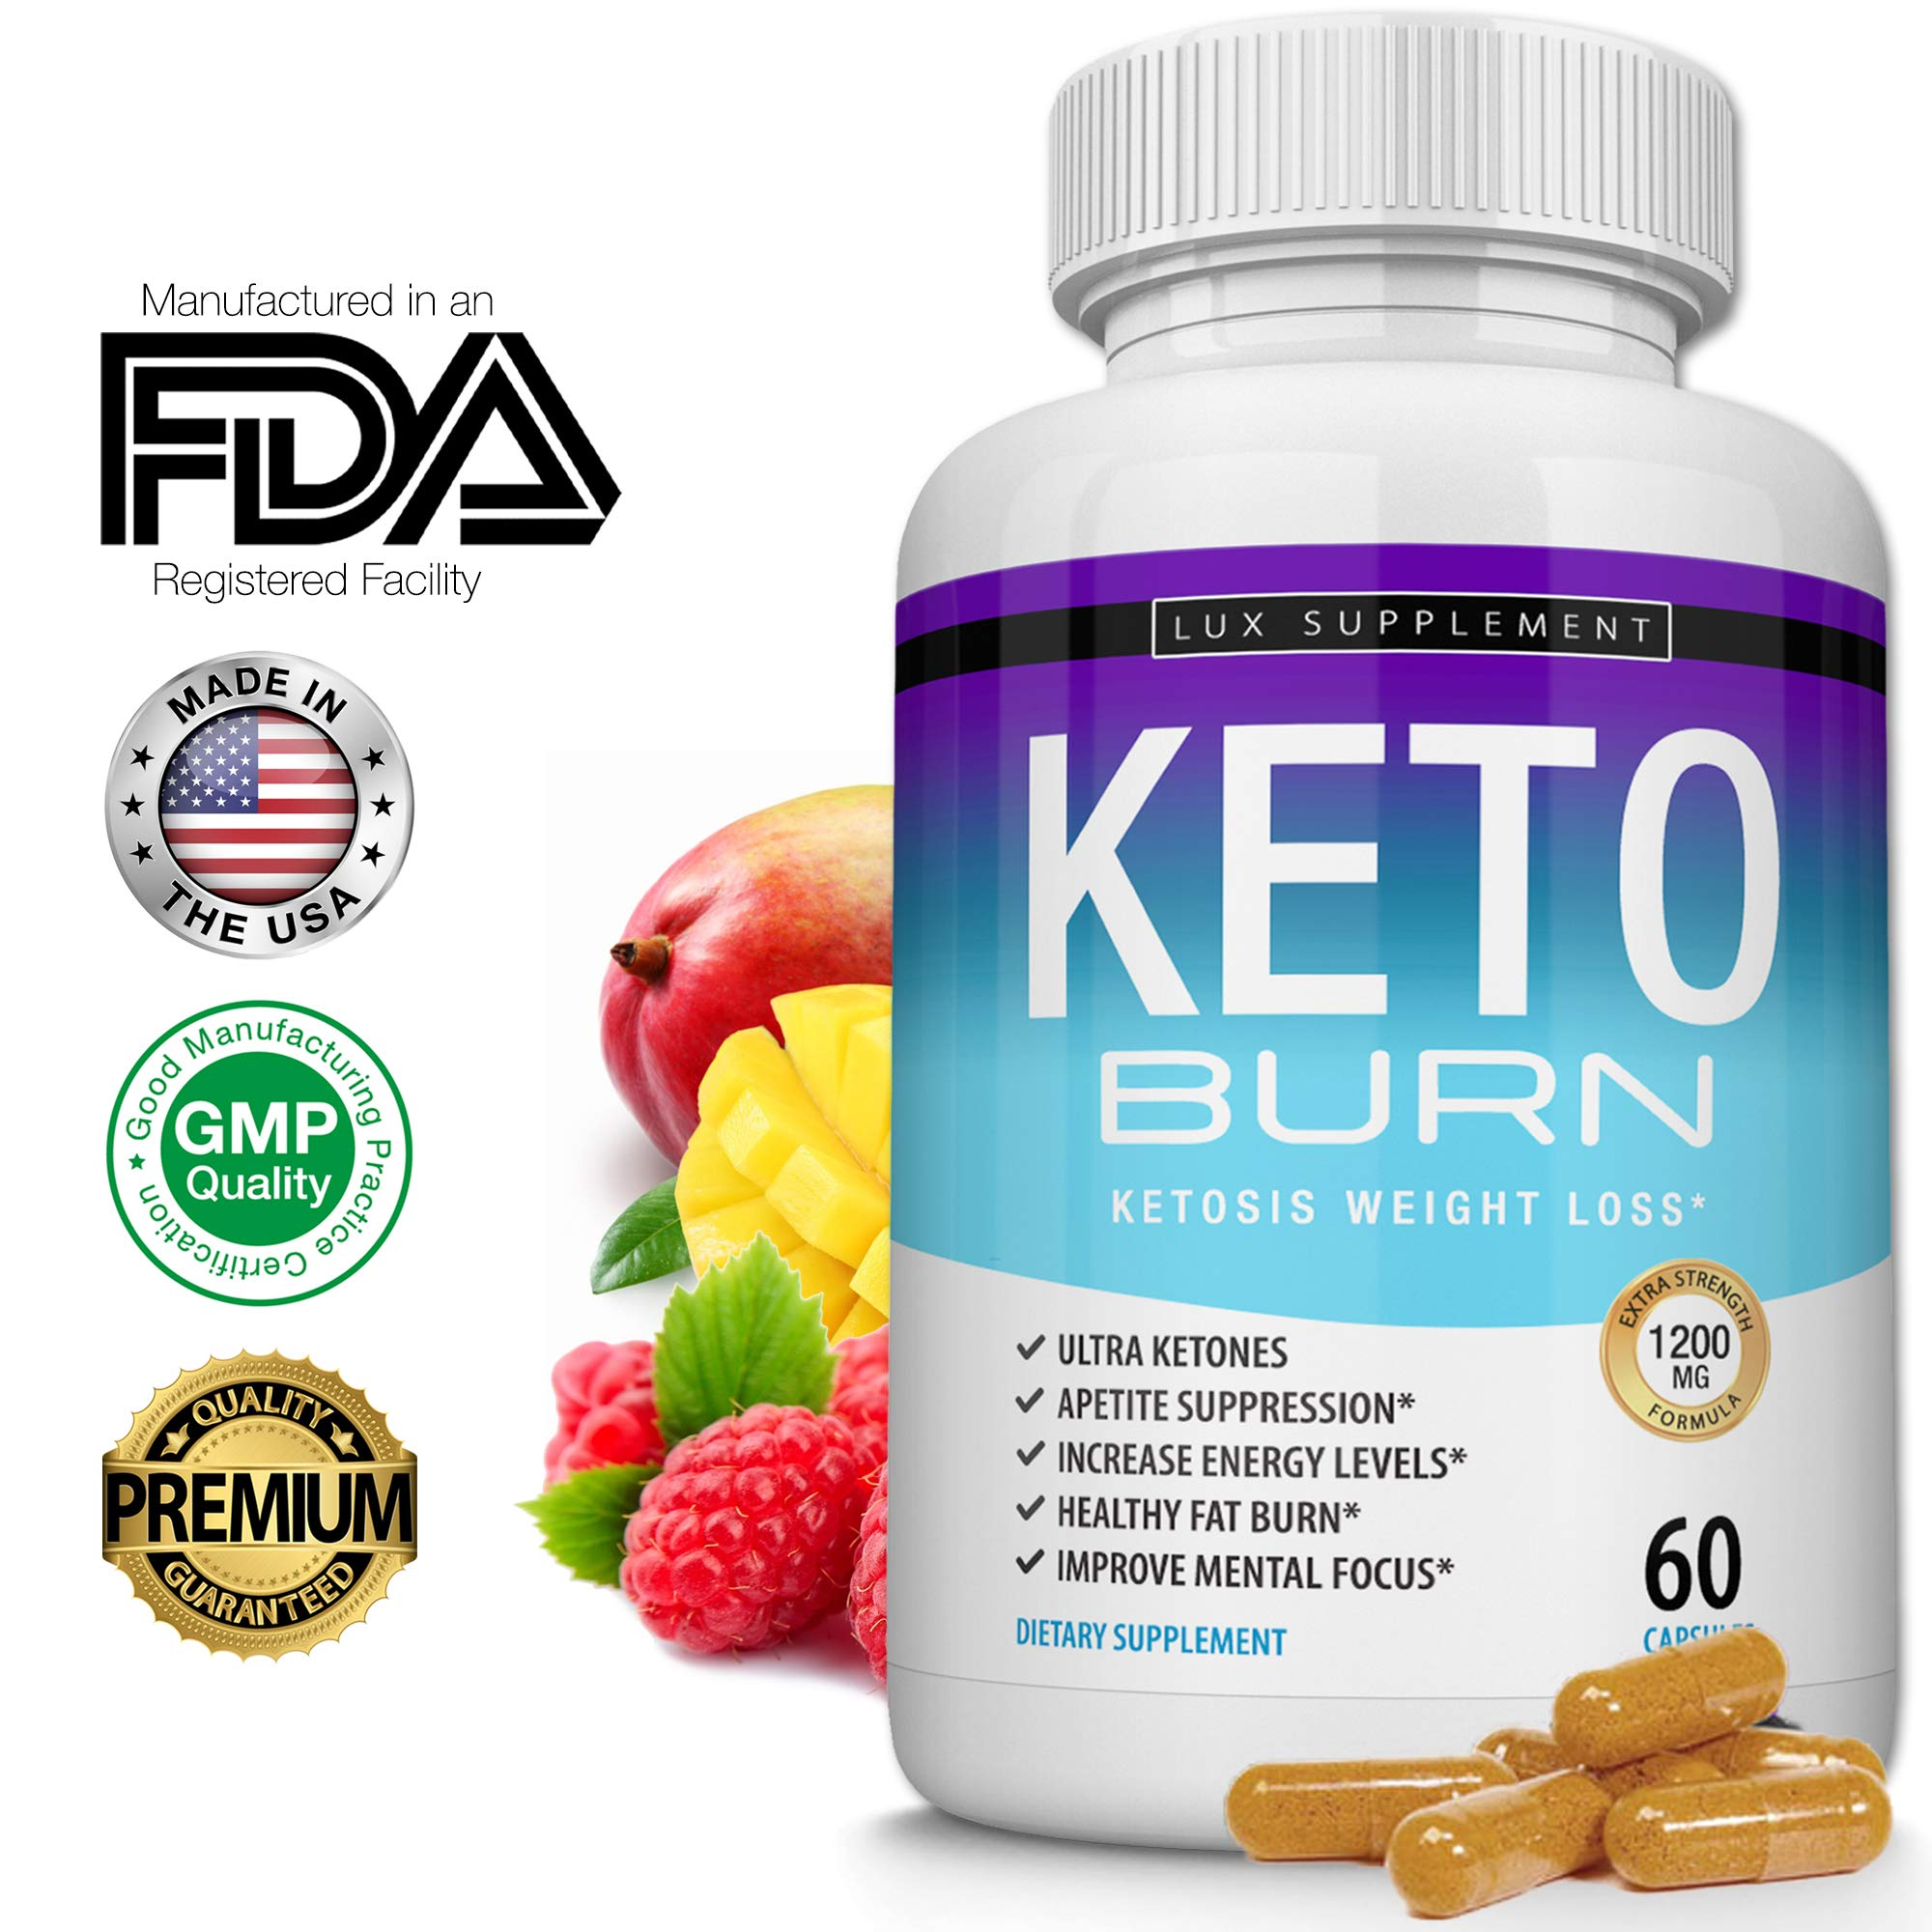 Lux Supplement Keto Burn Pills Ketosis Weight Loss- 1200 Mg Ultra Advanced Natural Ketogenic Fat Burner Using Ketone Diet, Boost Energy Focus & Metabolism Appetite Suppressant, Men Women 60 Capsules by Lux Supplement (Image #1)